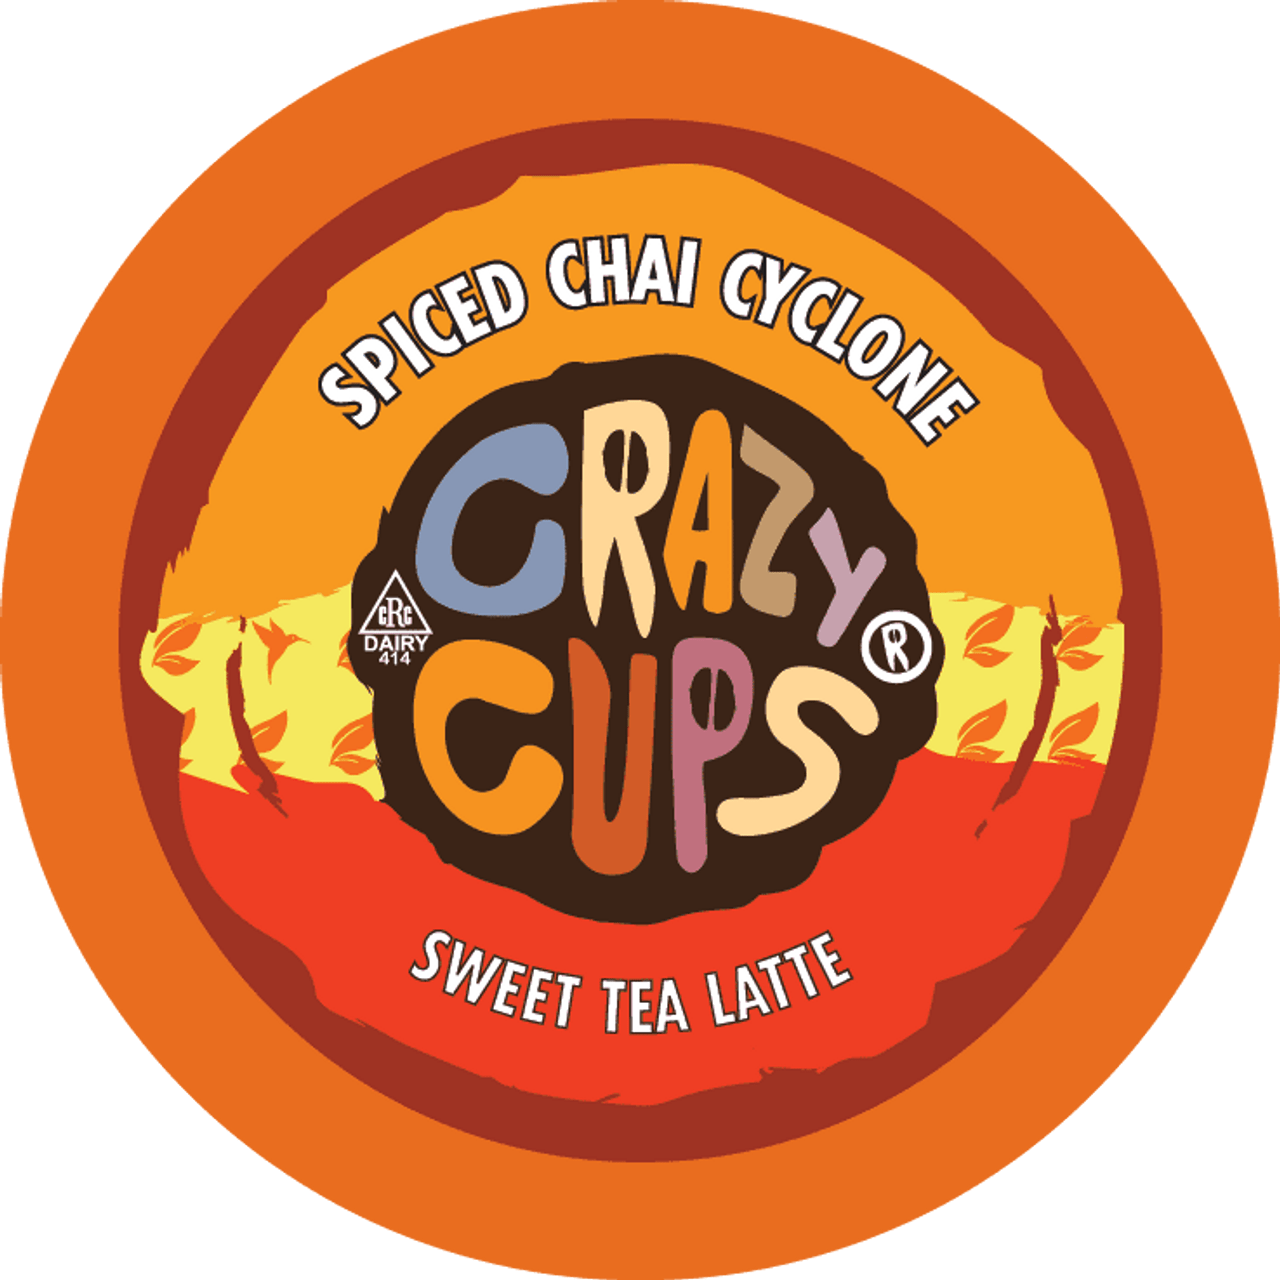 Spiced Chai Cyclone Crazy Tea Latte by Crazy Cups